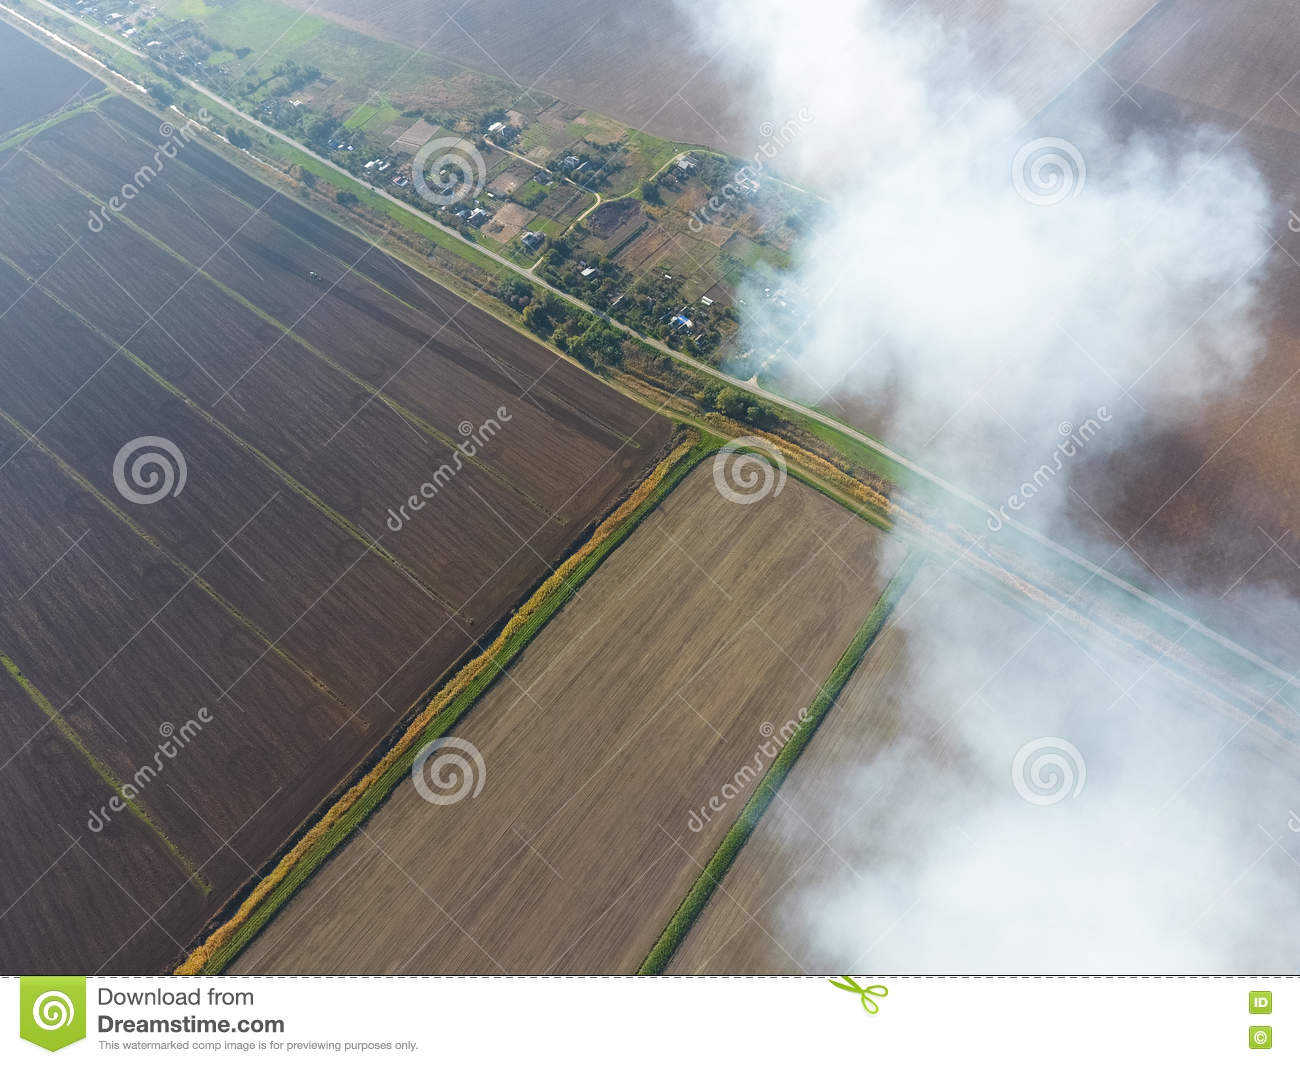 The smoke over the village. Clubs of smoke over the village houses and fields. Aerophotographing areas